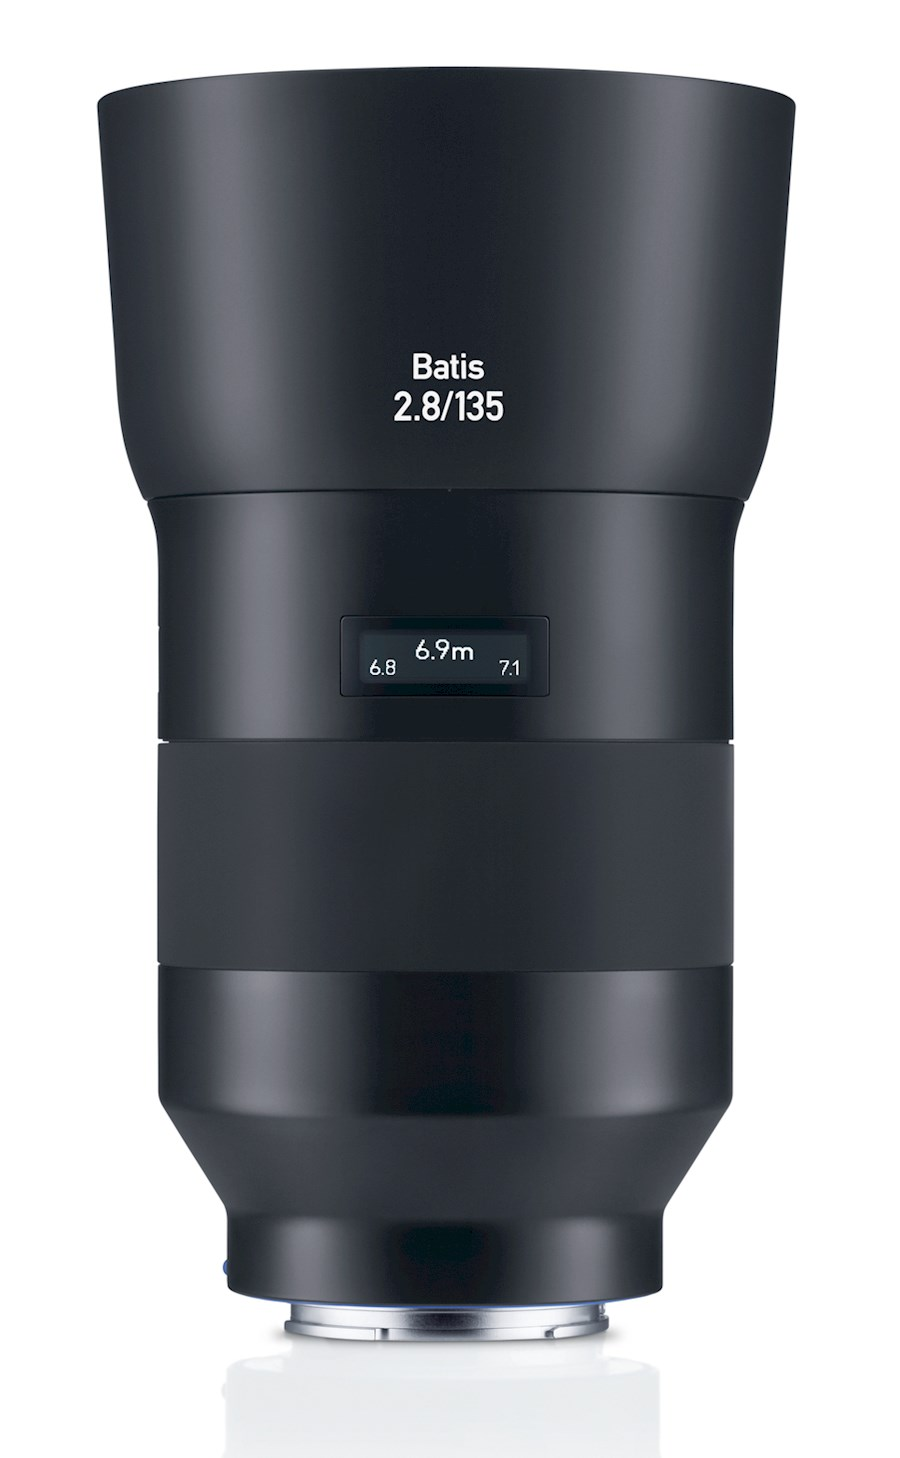 Rent a ZEISS Batis 135 mm F2.8 | Sony E-mount in Nieuw-Vennep from TRANSCONTINENTA B.V.